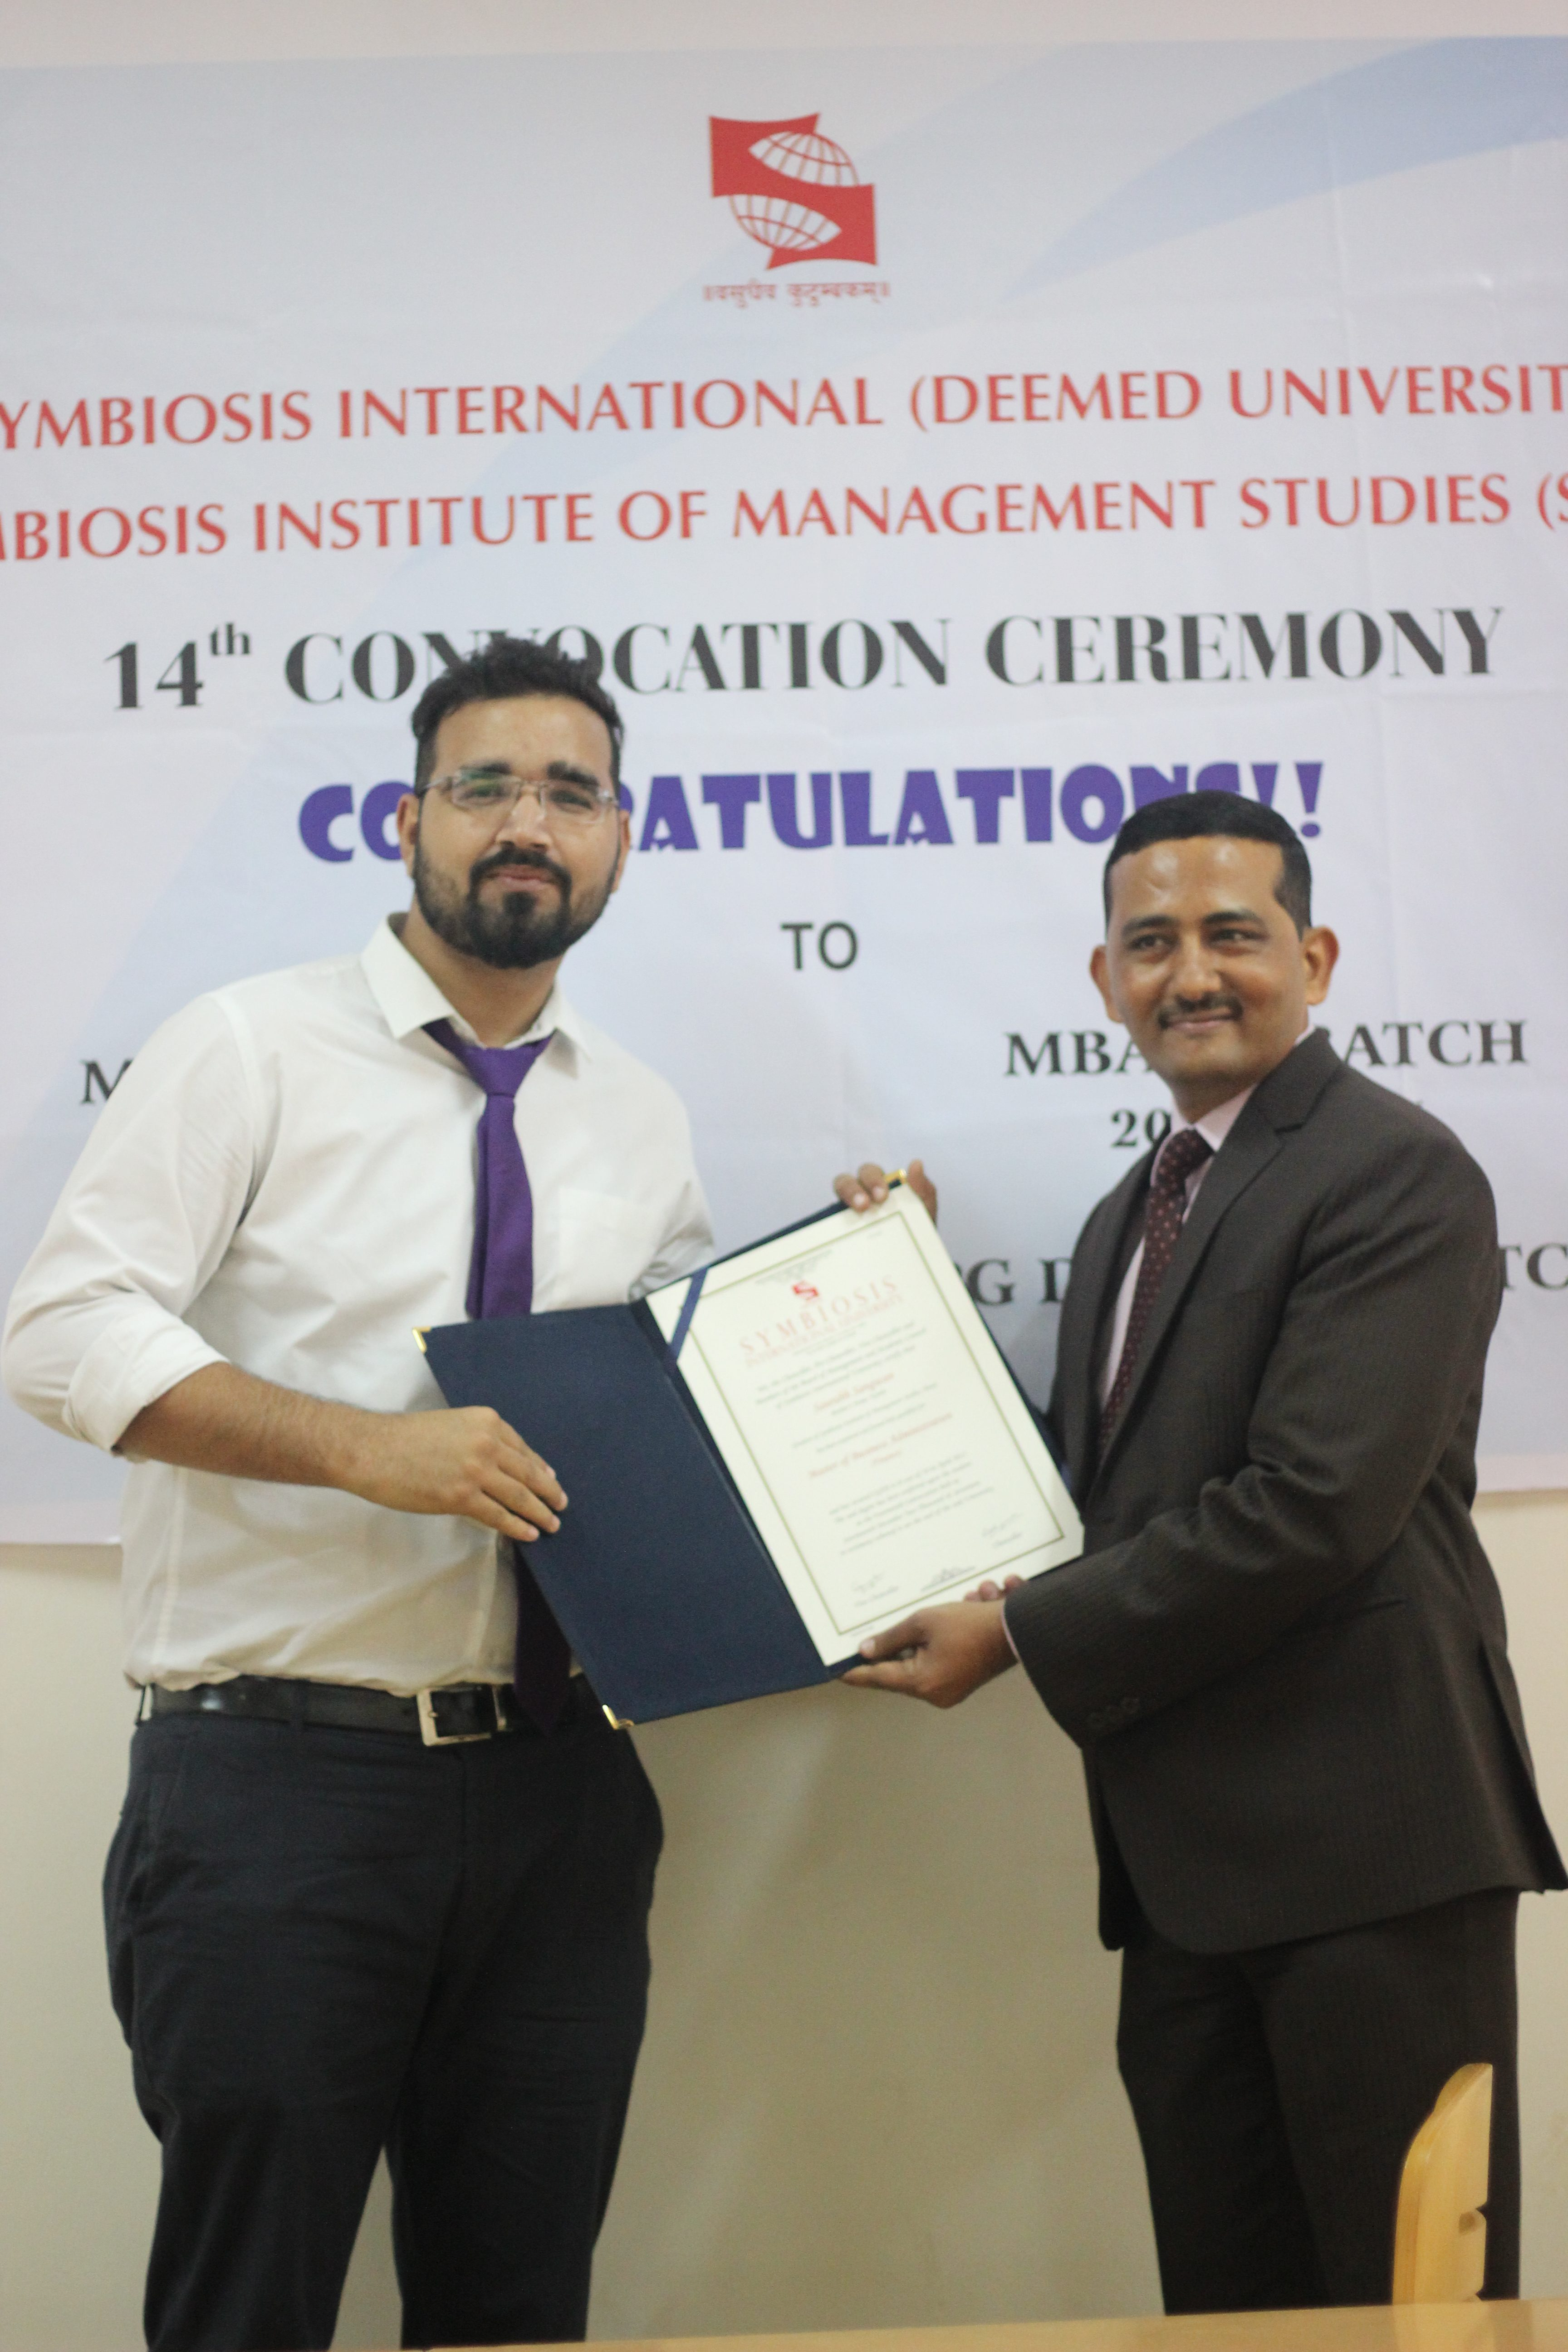 Award Function At Symbiosis Institute Of Management Studies